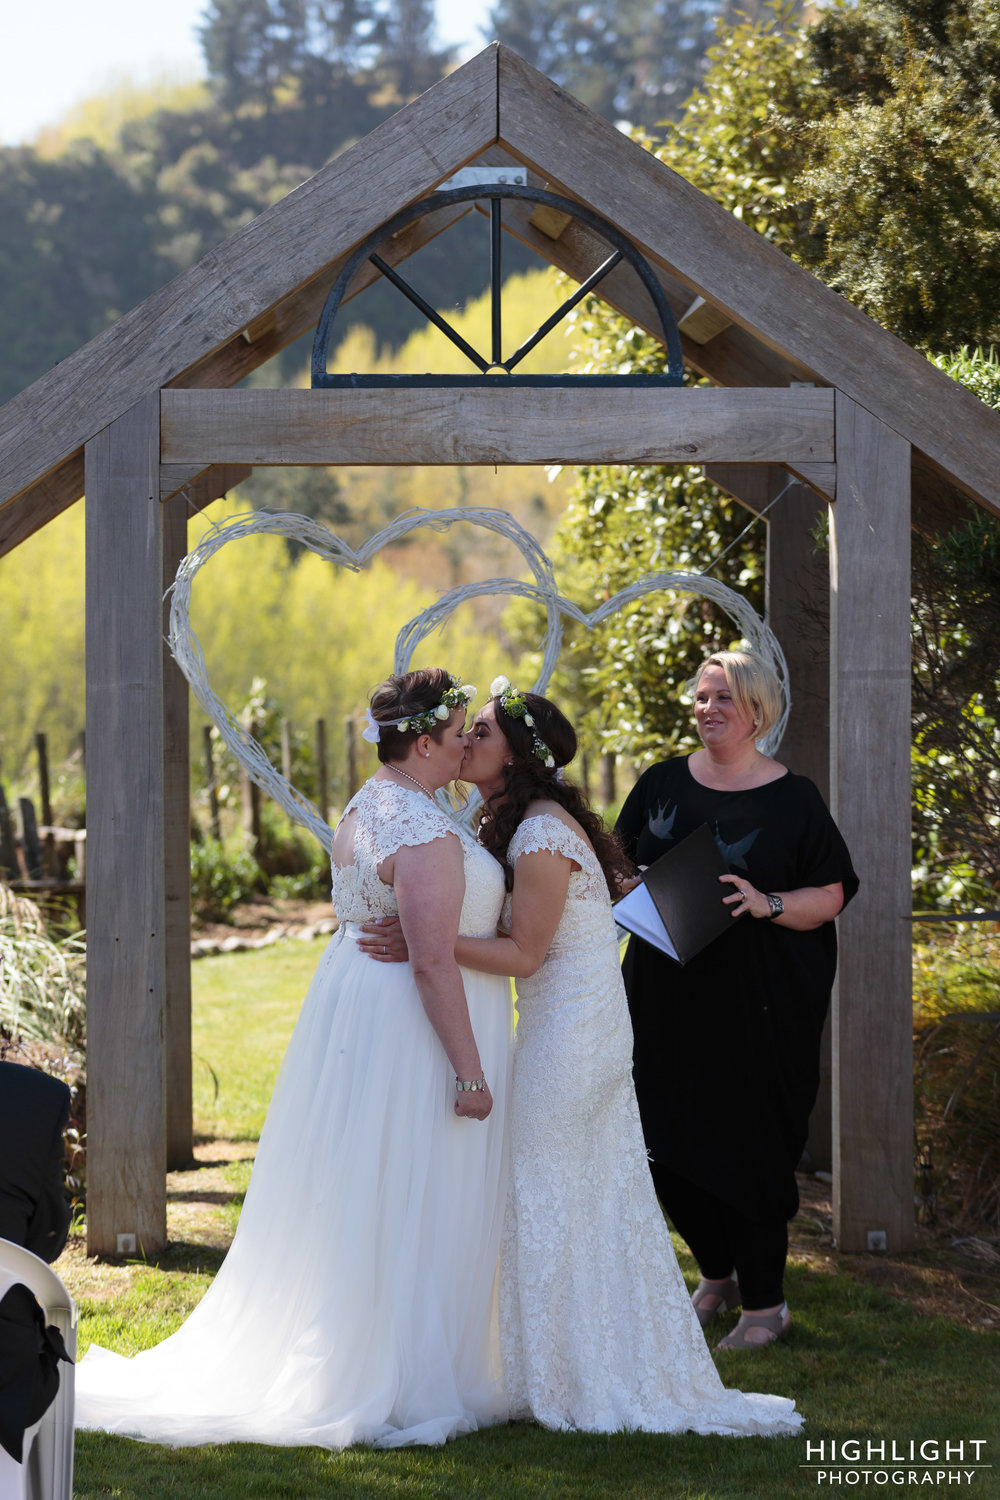 highlight_wedding_photography_makoura_lodge_manawatu_new_zealand-80.jpg